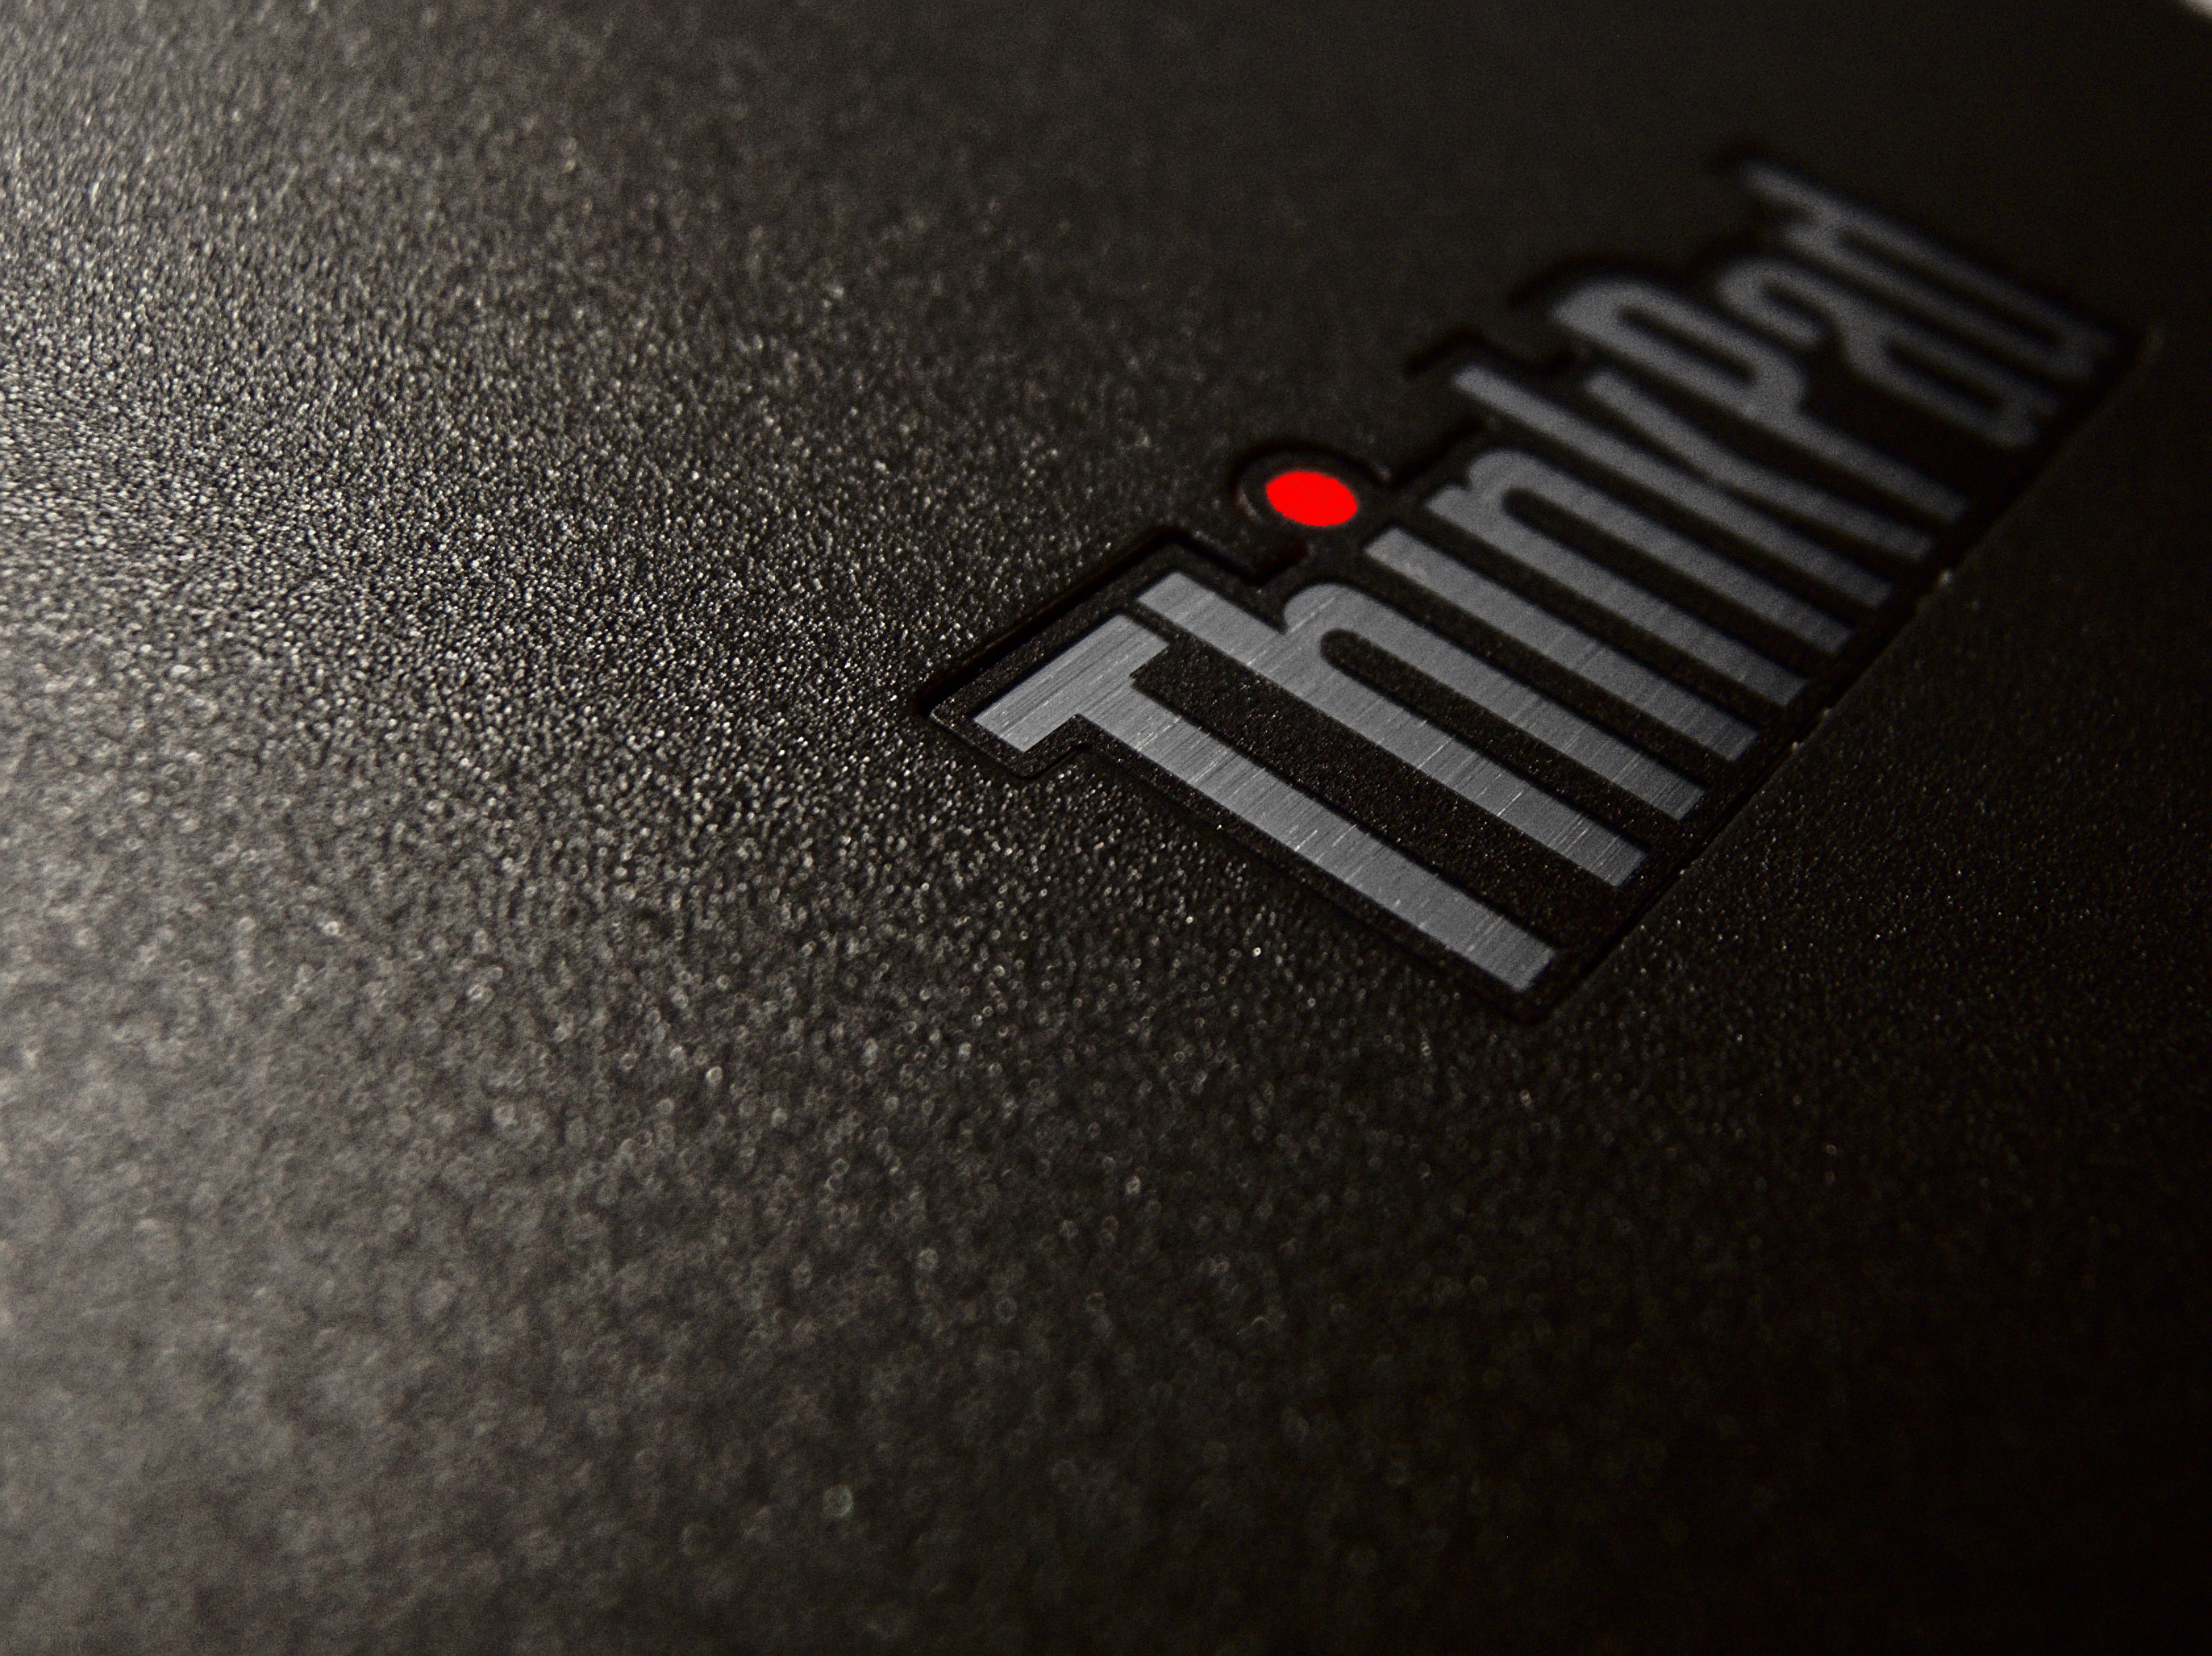 thinkpad wallpapers wallpaper - photo #9